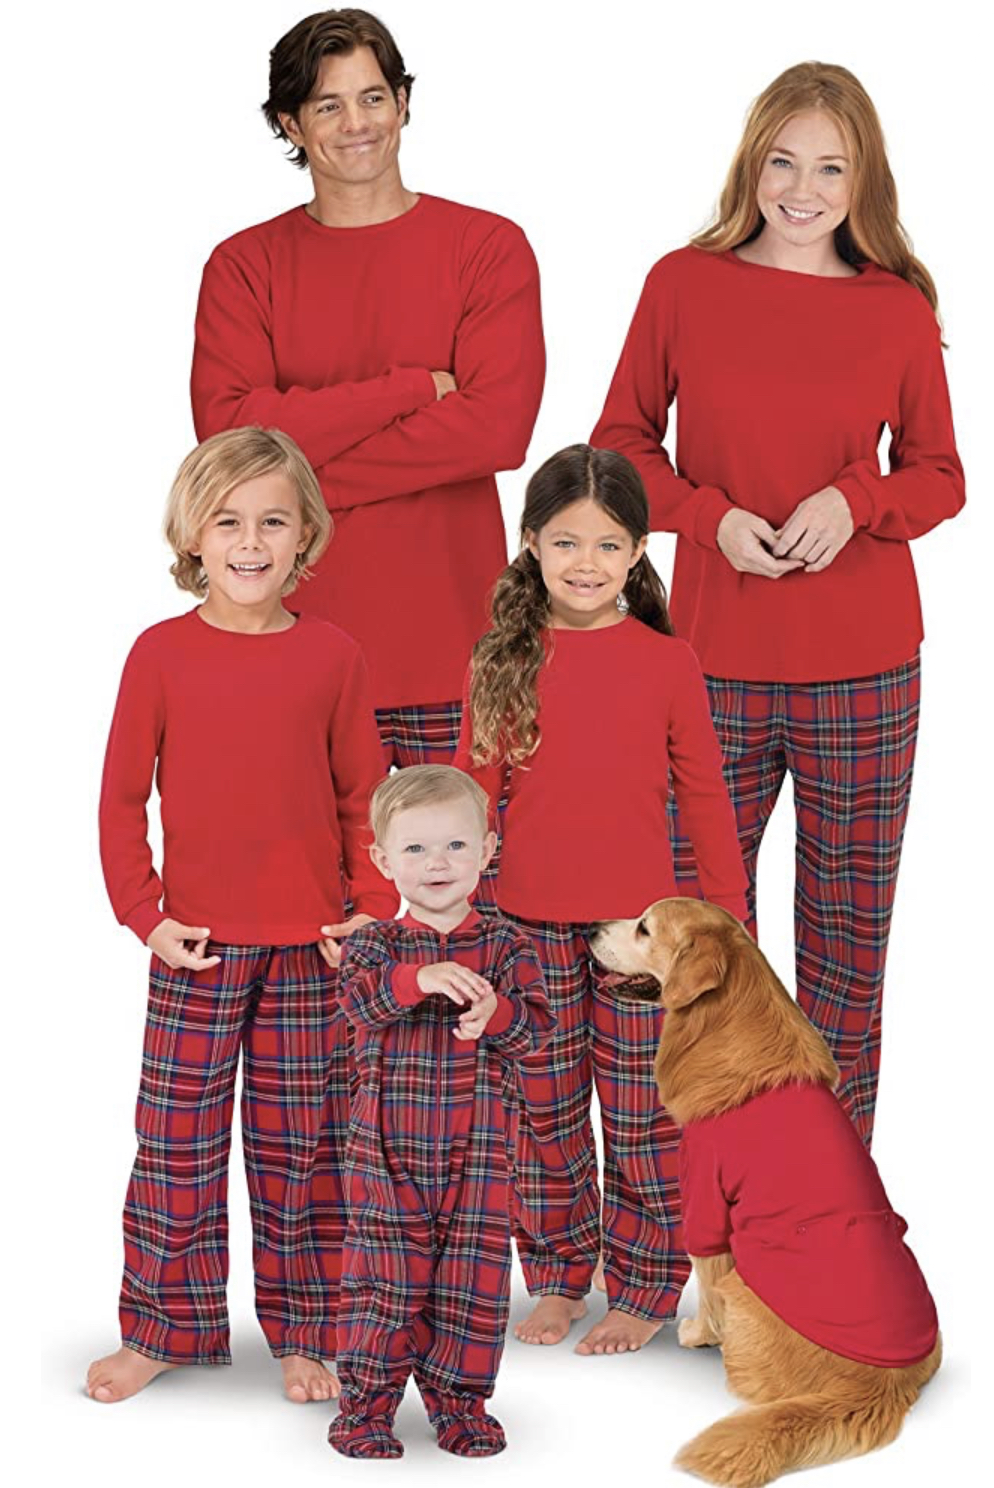 "<p>Love the red and plaid combo and there's literally an outfit for the dog...if your pup is into it!{&nbsp;}<a  href=""https://www.amazon.com/PajamaGram-Flannel-Stewart-Matching-Christmas/dp/B08FCM1PR6"" target=""_blank"" title=""https://www.amazon.com/PajamaGram-Flannel-Stewart-Matching-Christmas/dp/B08FCM1PR6"">Shop the look</a>.{&nbsp;} (Image: Amazon){&nbsp;}</p>"